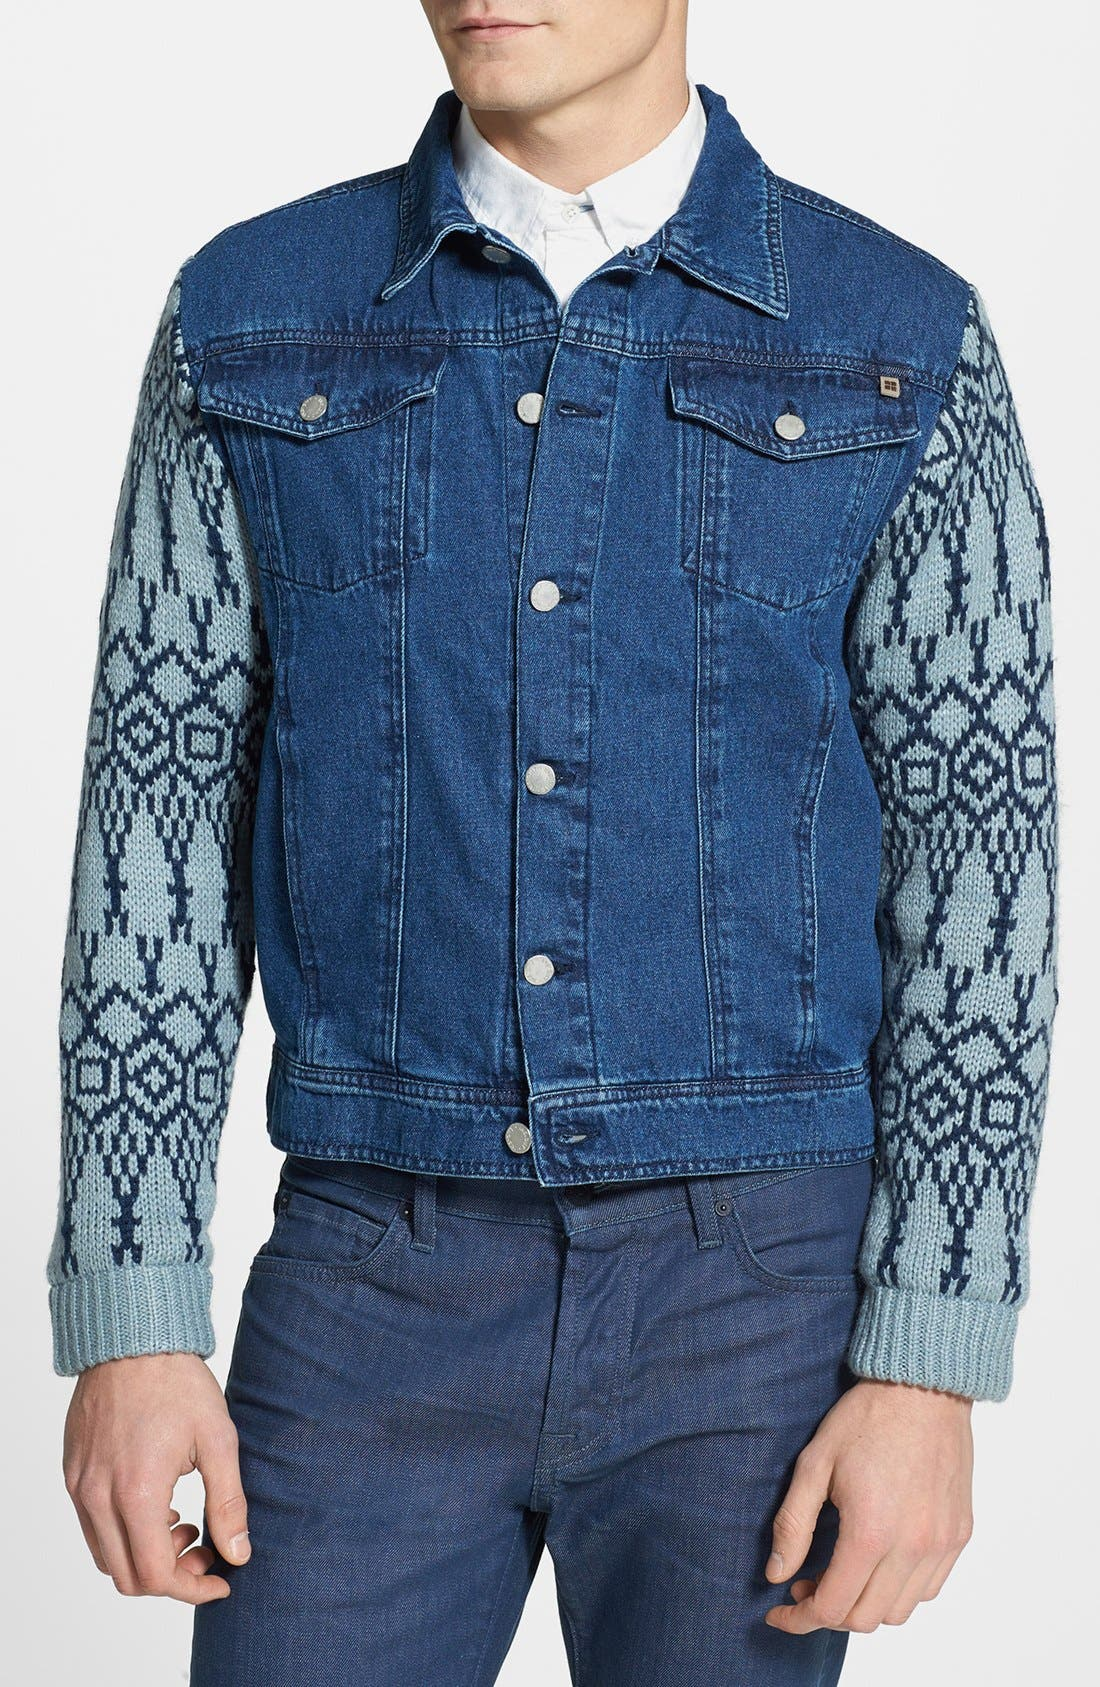 Main Image - Insight 'Revival' Denim Jacket with Knit Sleeves